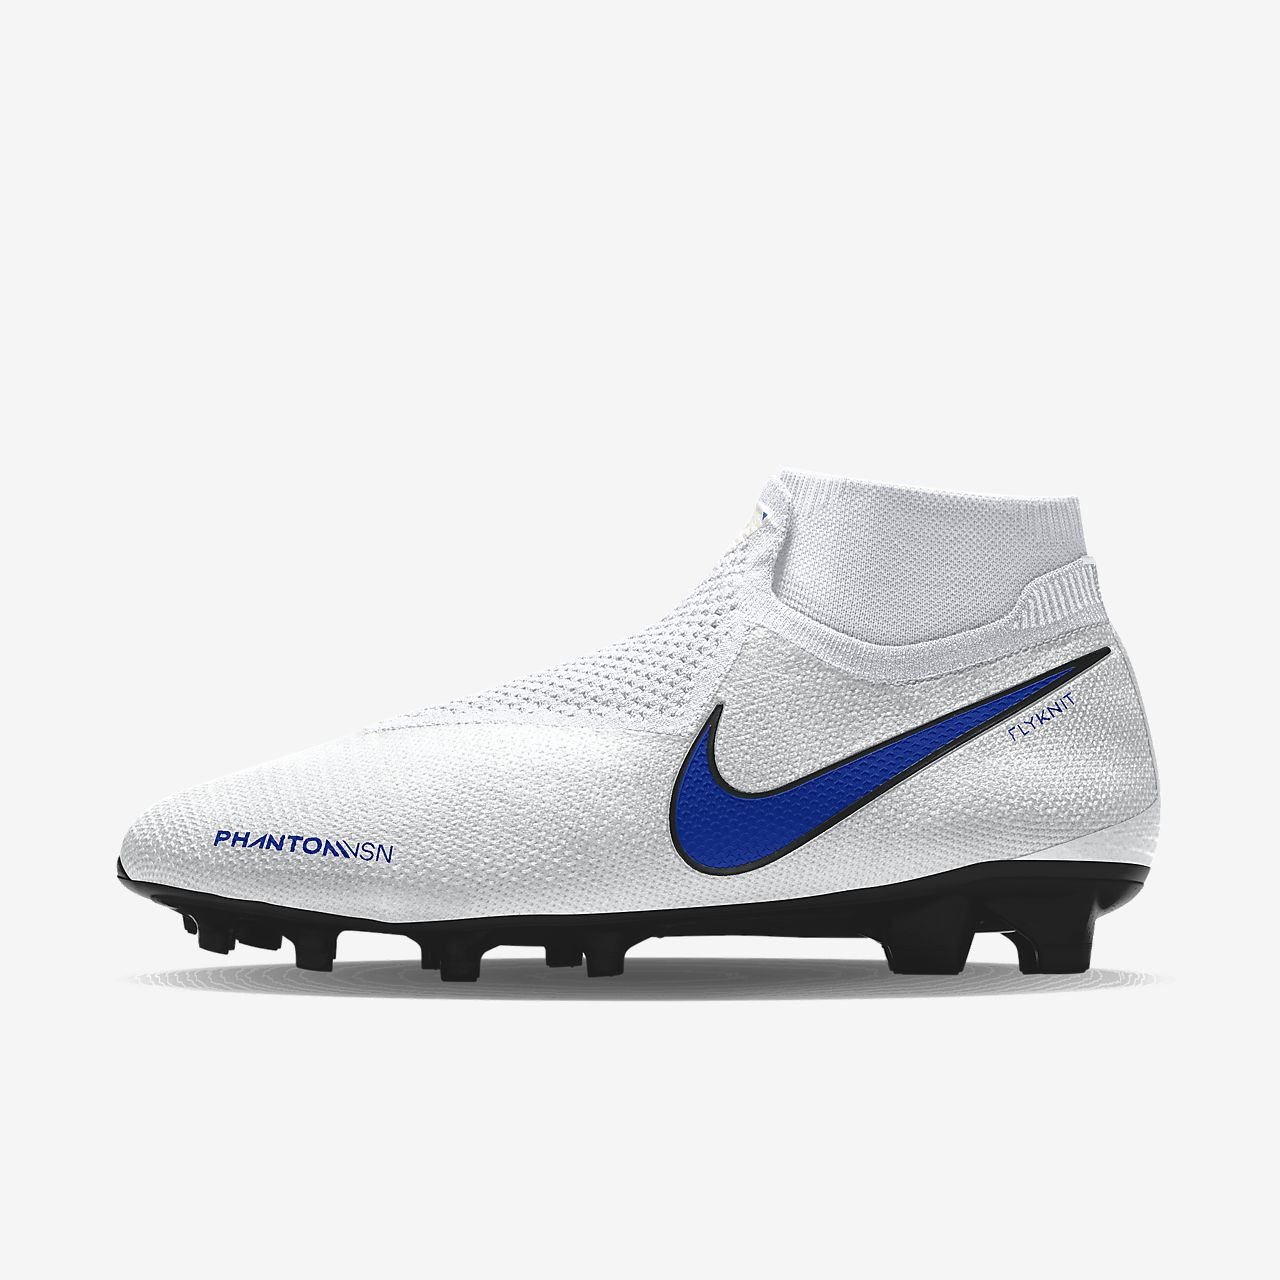 Nike Phantom Vision Elite FG By You Botas de fútbol para terreno firme personalizables